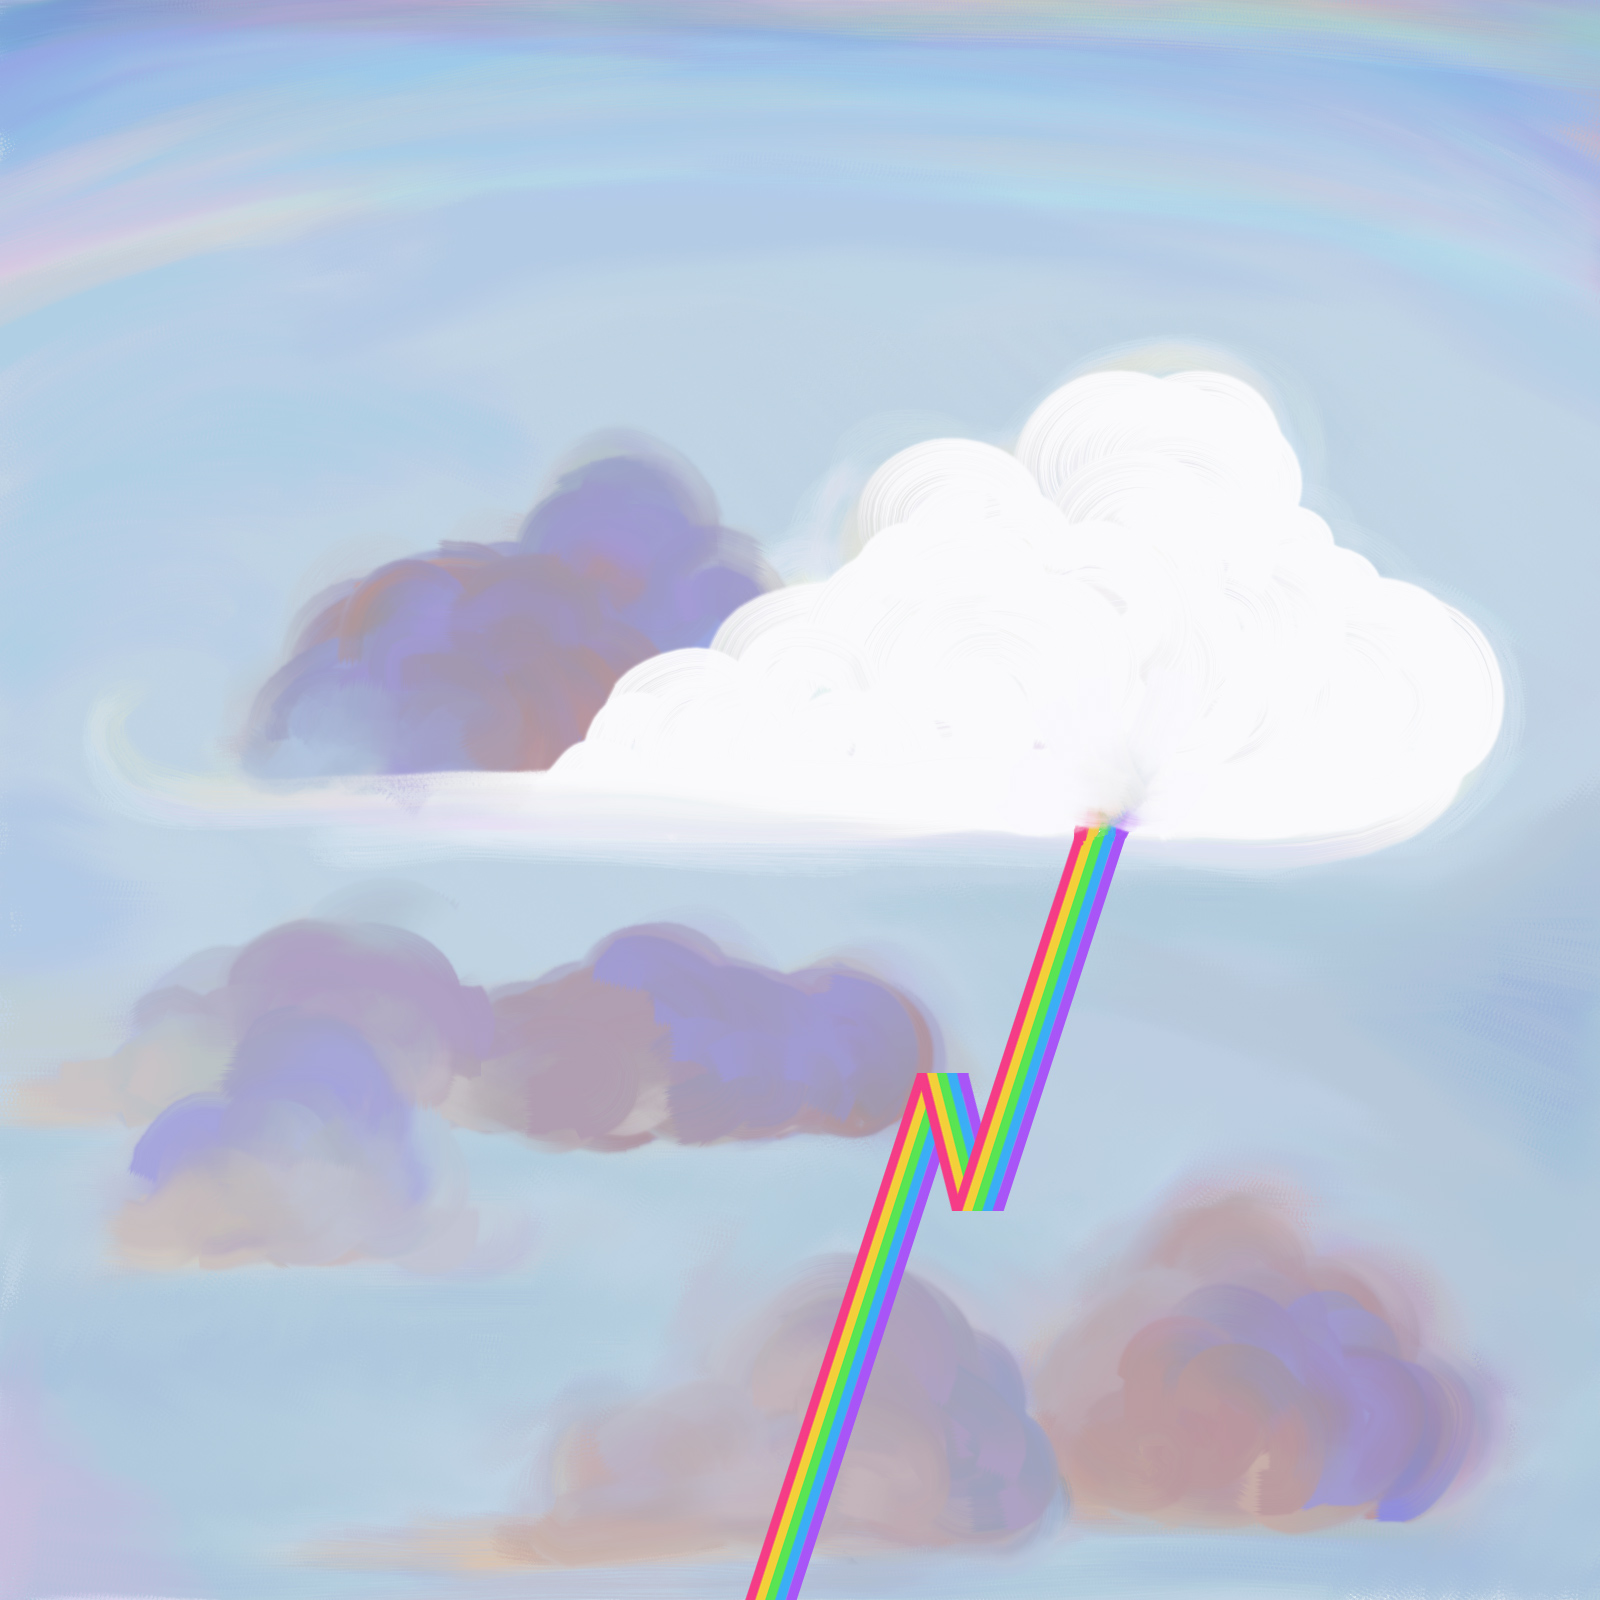 A digital painting of a light blue sky filled with clouds. Most of dark bluish gray storm clouds, but one is completely white, which is discharging a jagged bolt of lightning in striped rainbow colors.